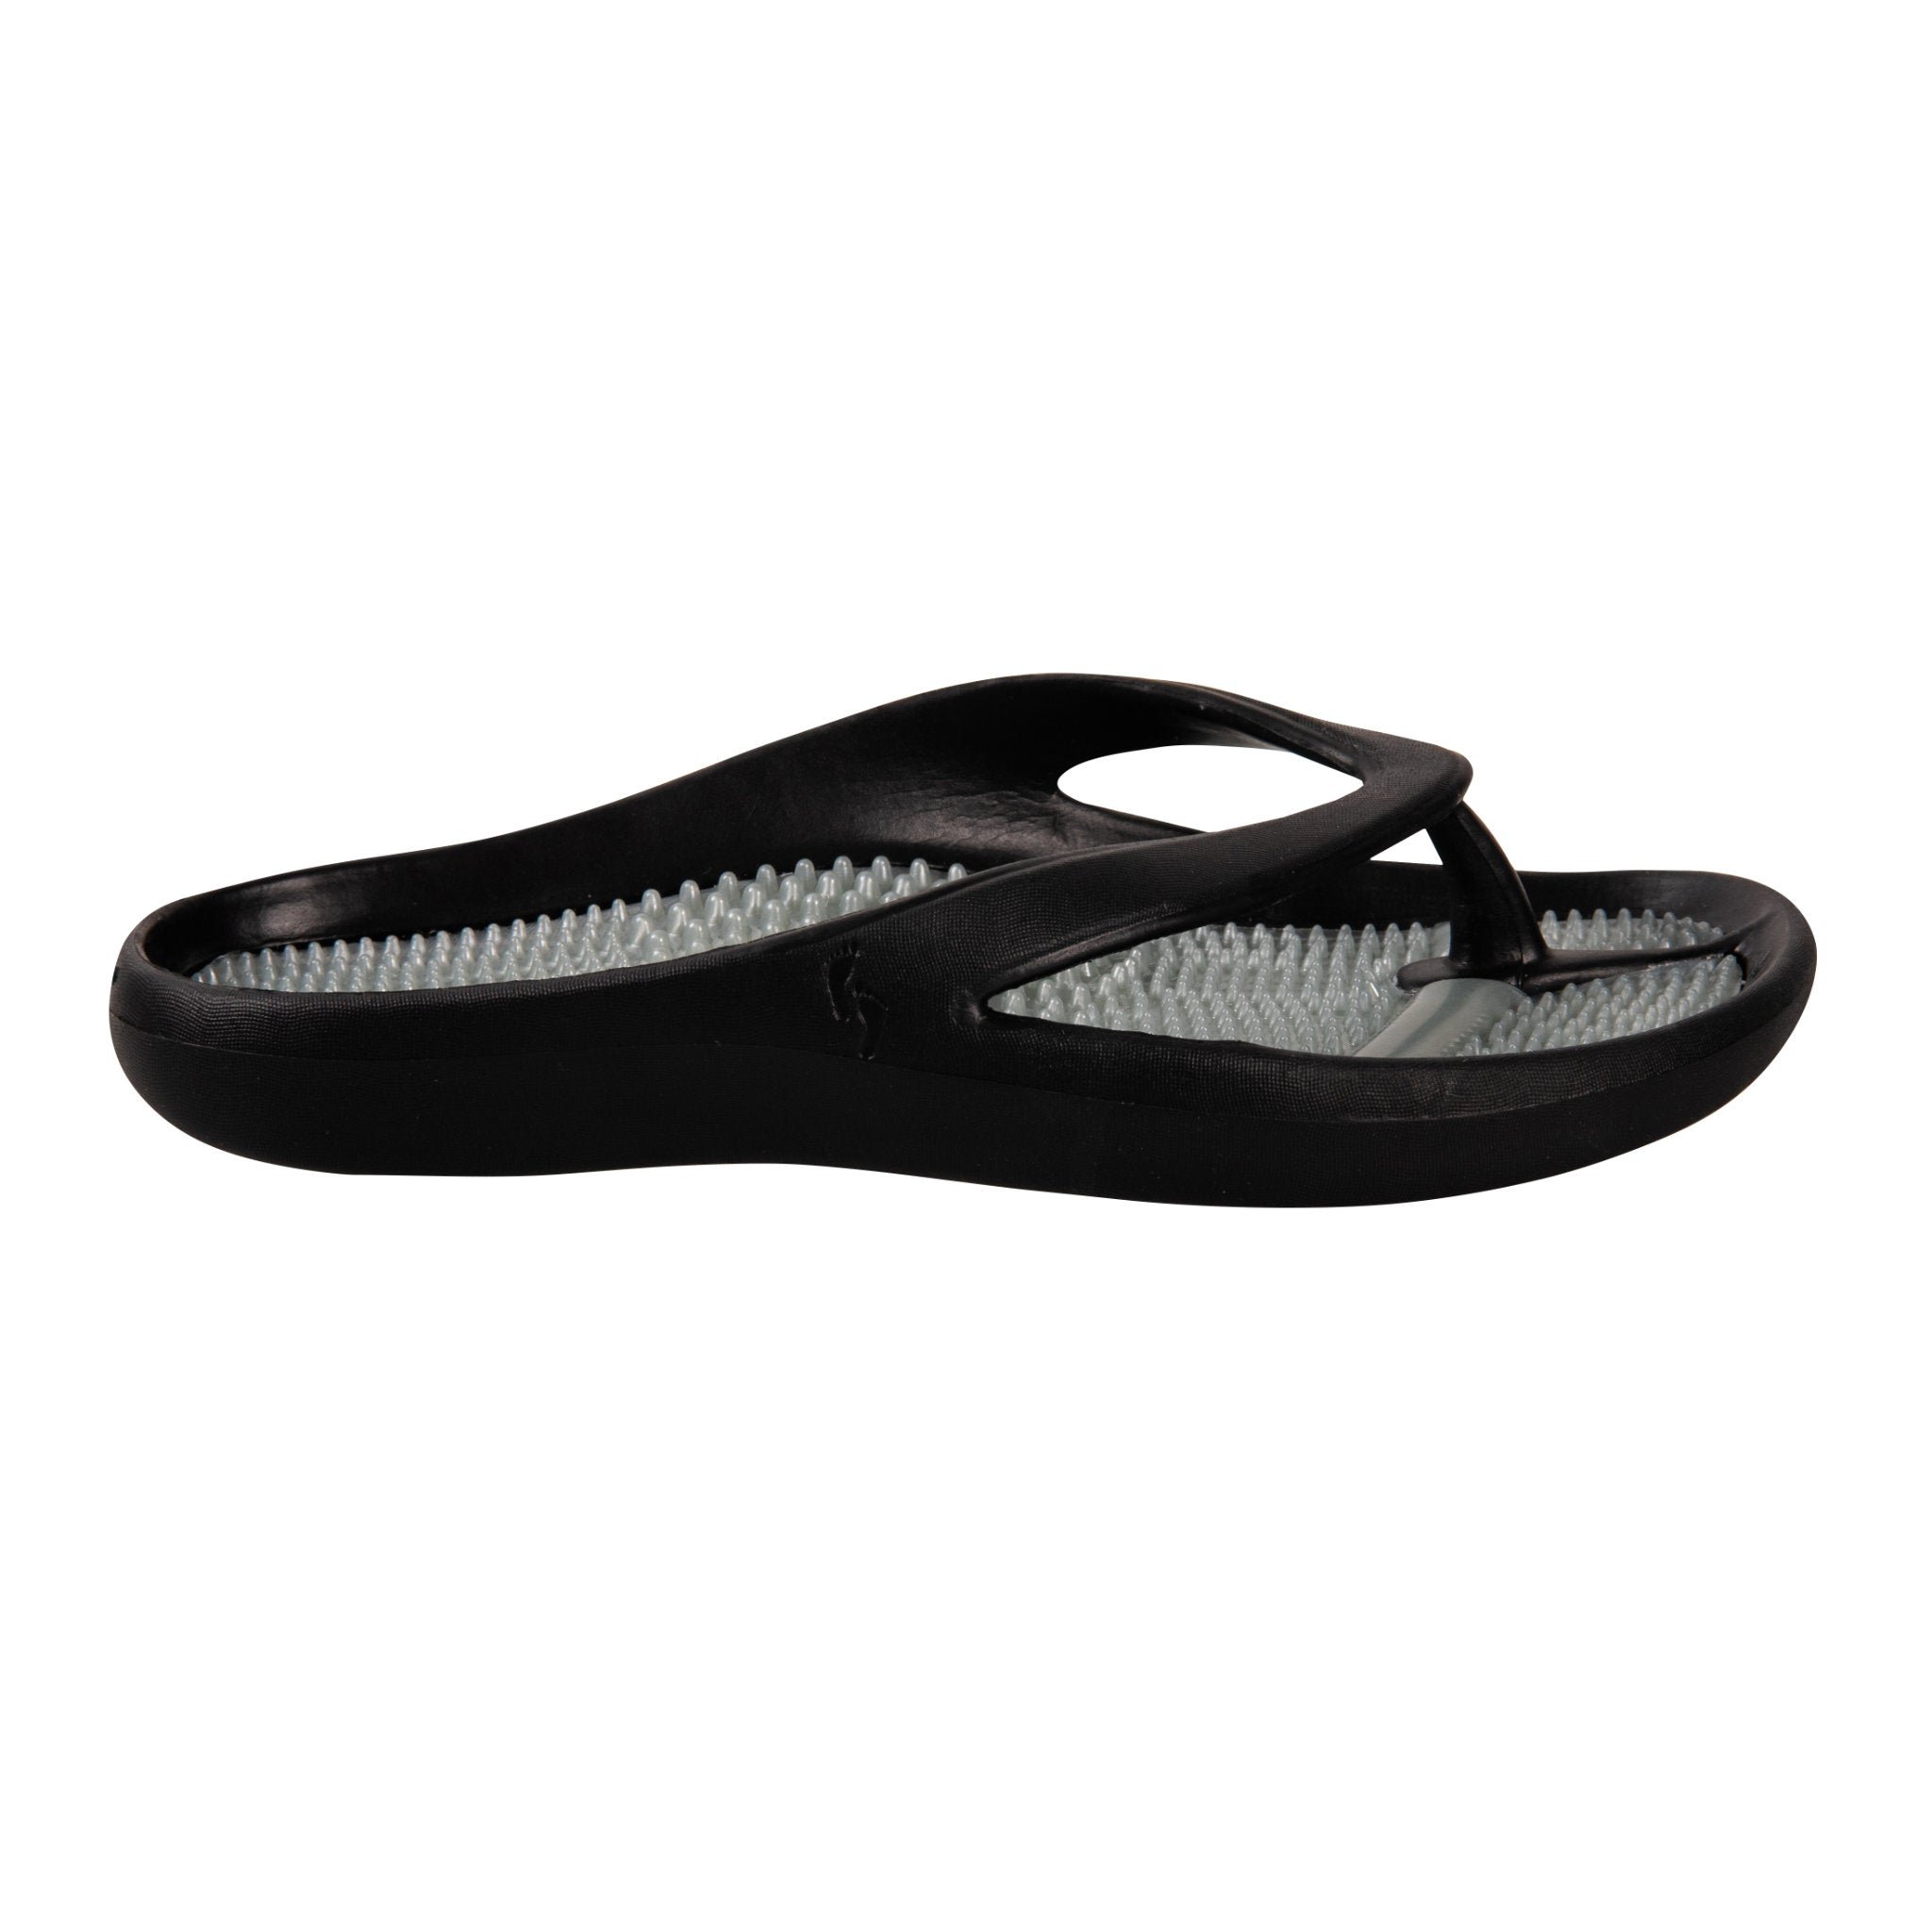 Cheeks women's Black Massage Sandals